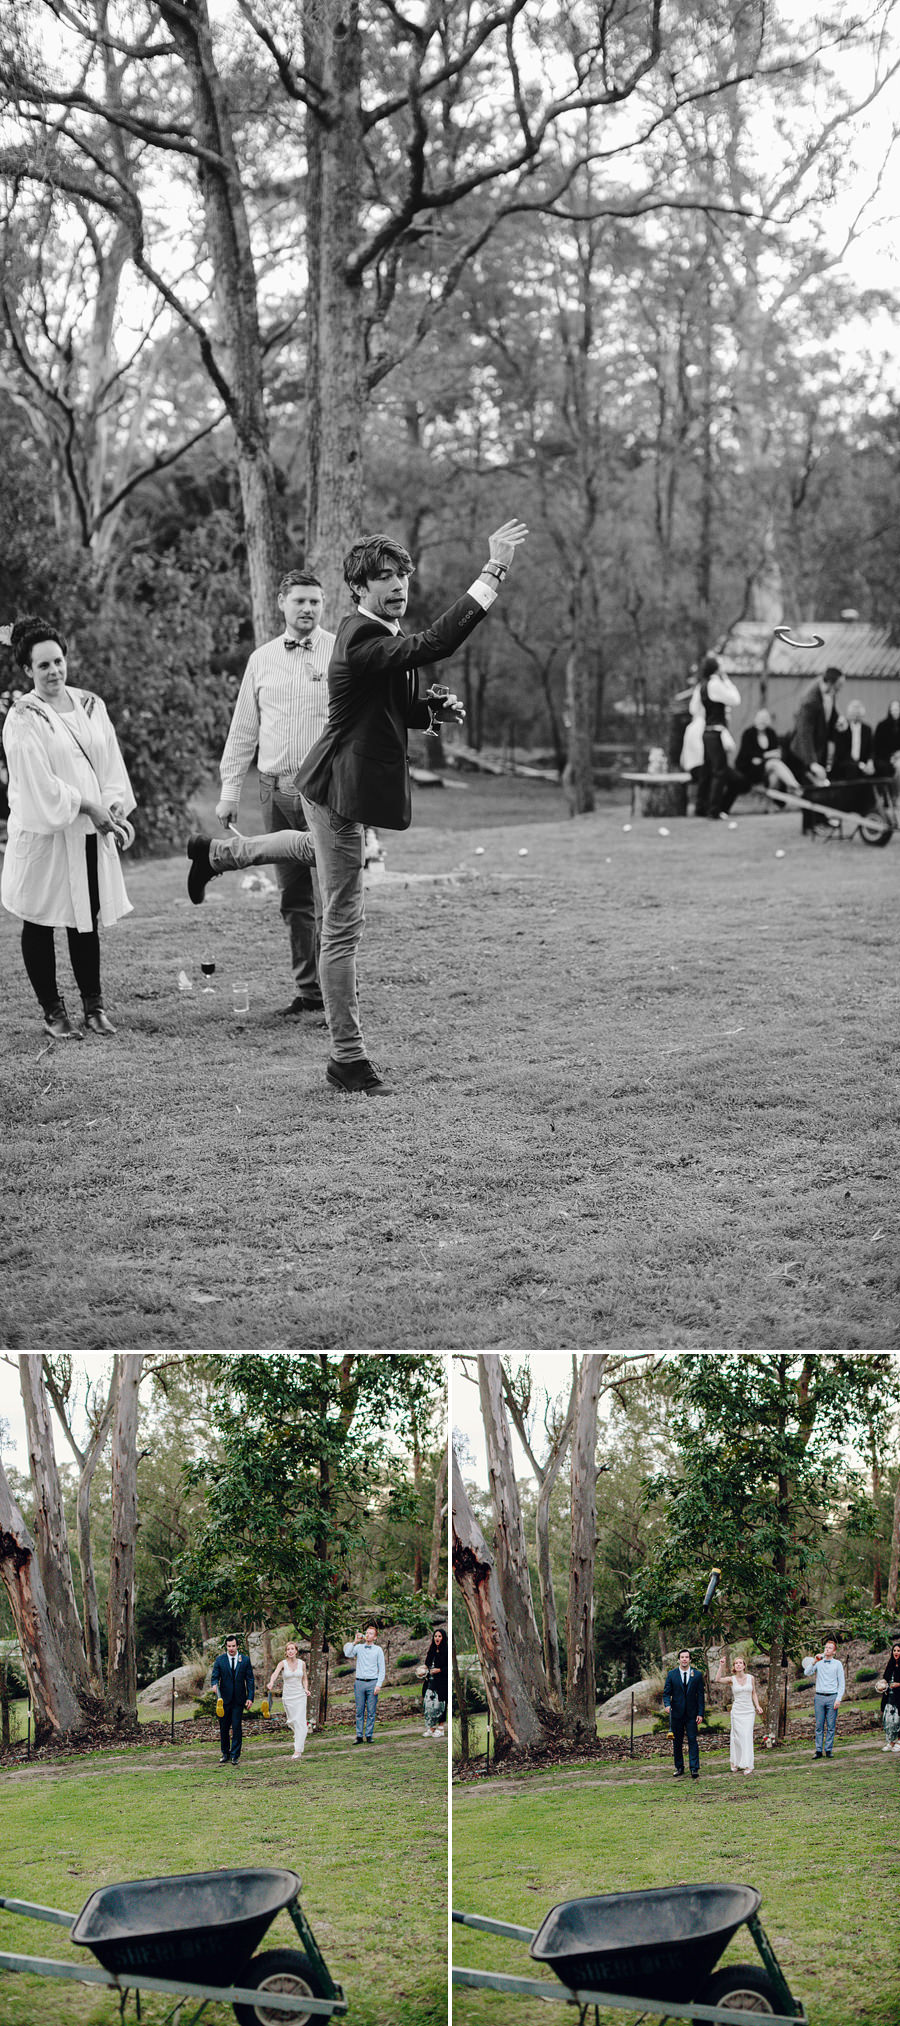 Modern Wedding Photography: Lawn Games